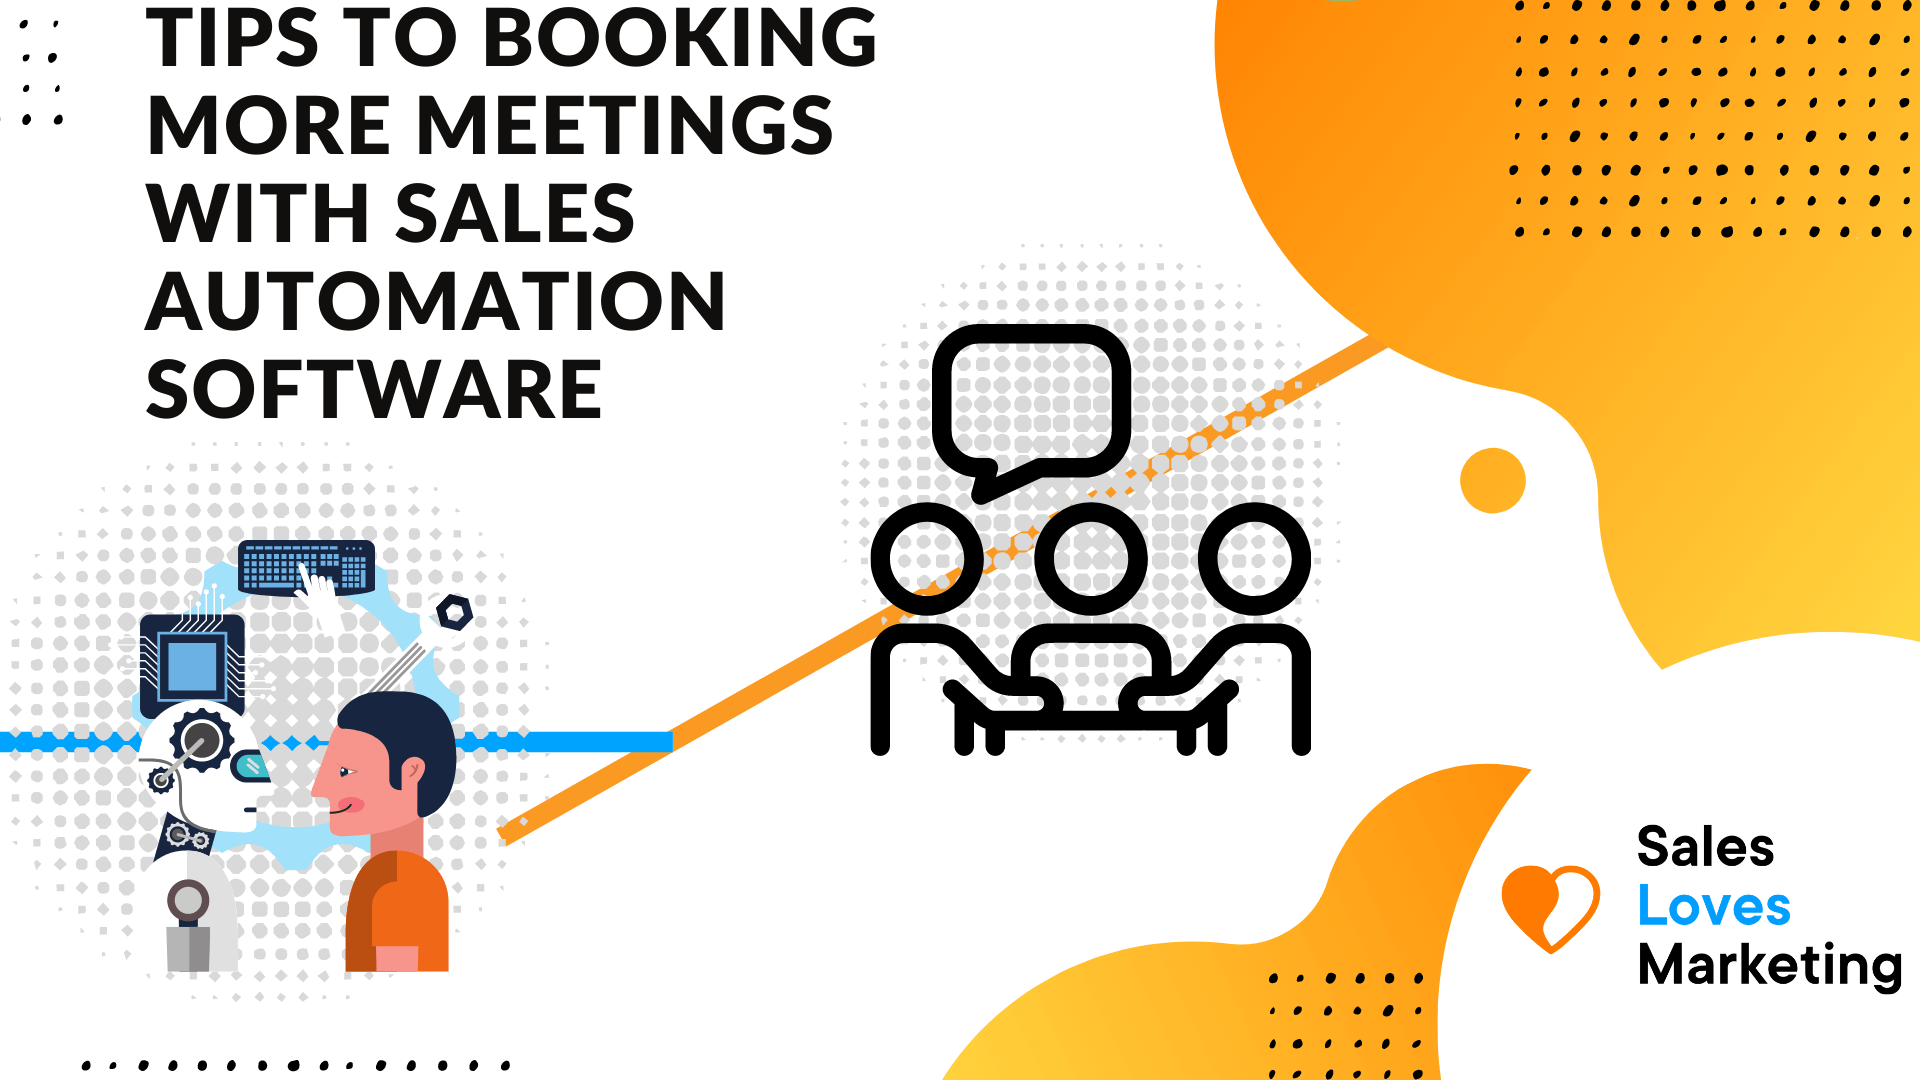 Book more meetings with a sales automation software